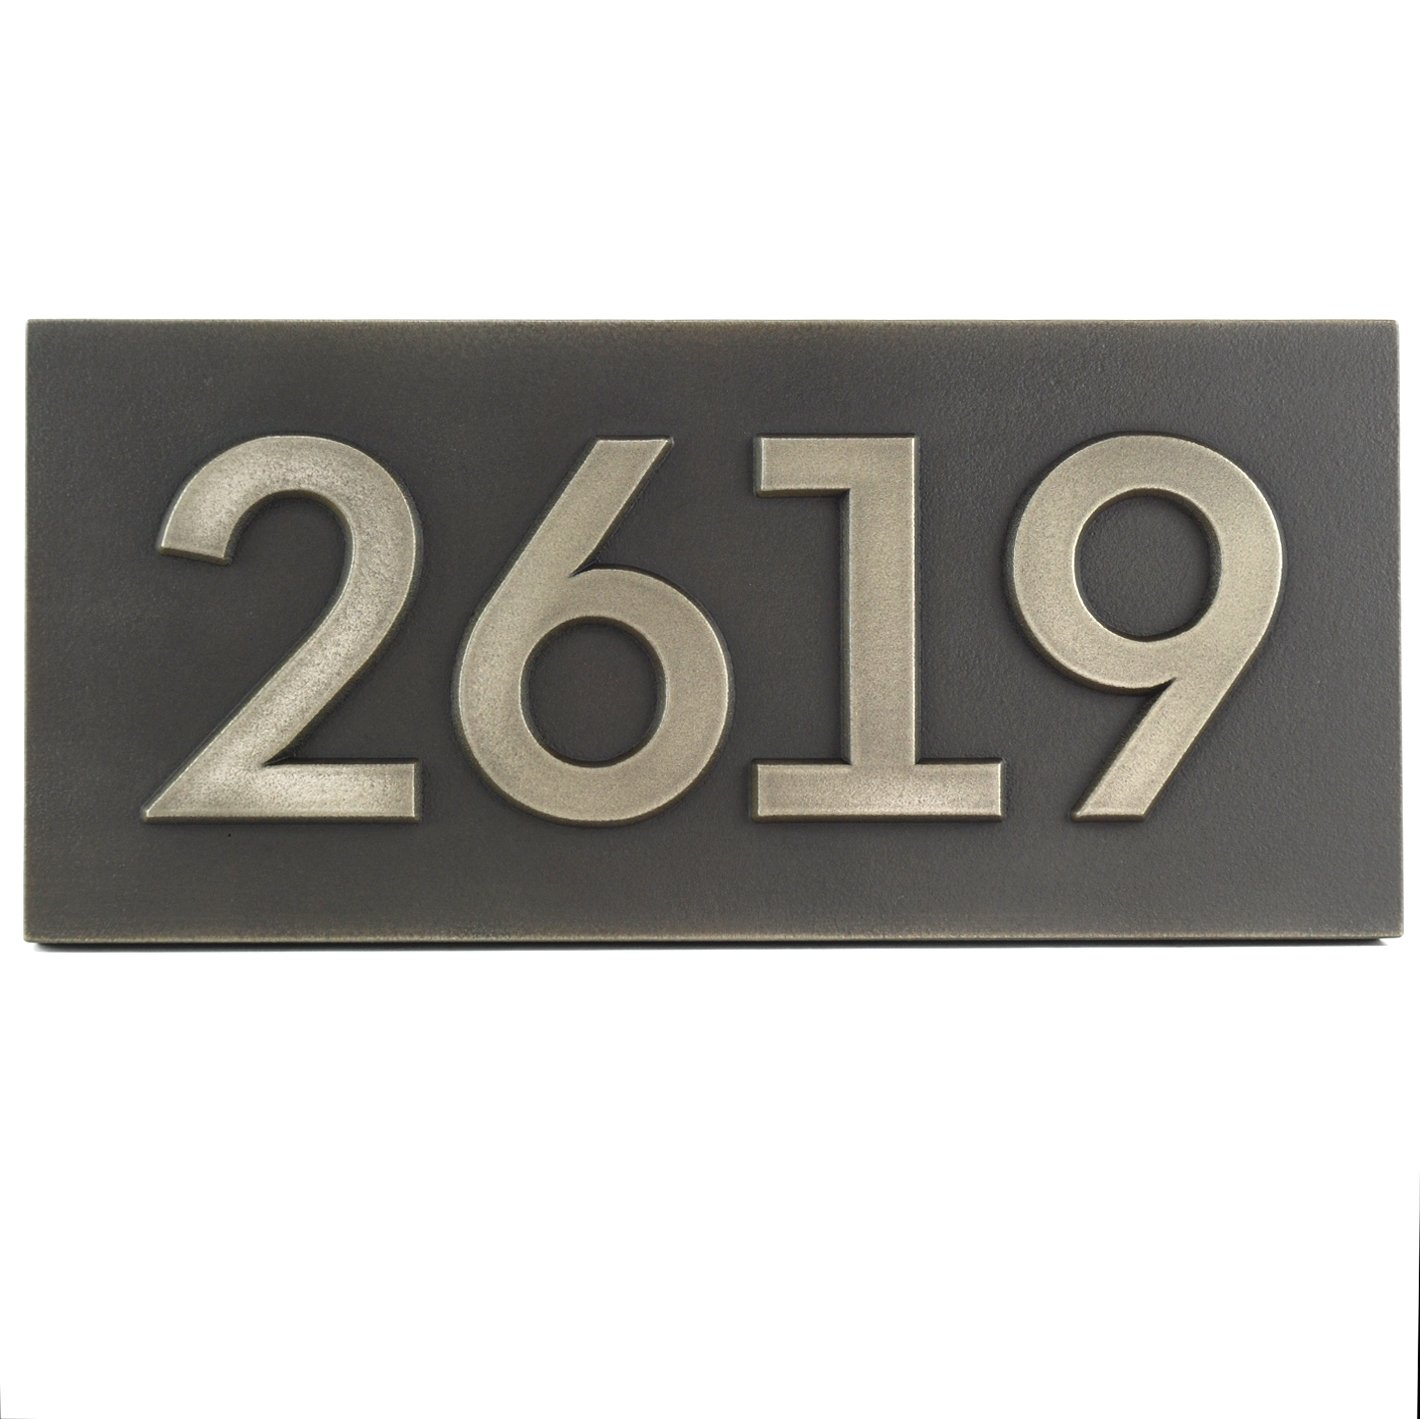 Custom Bold Classy Modern Font Address Plaque - 15.5 x 7 - Raised Sign is Stainless Steel Metal Coated